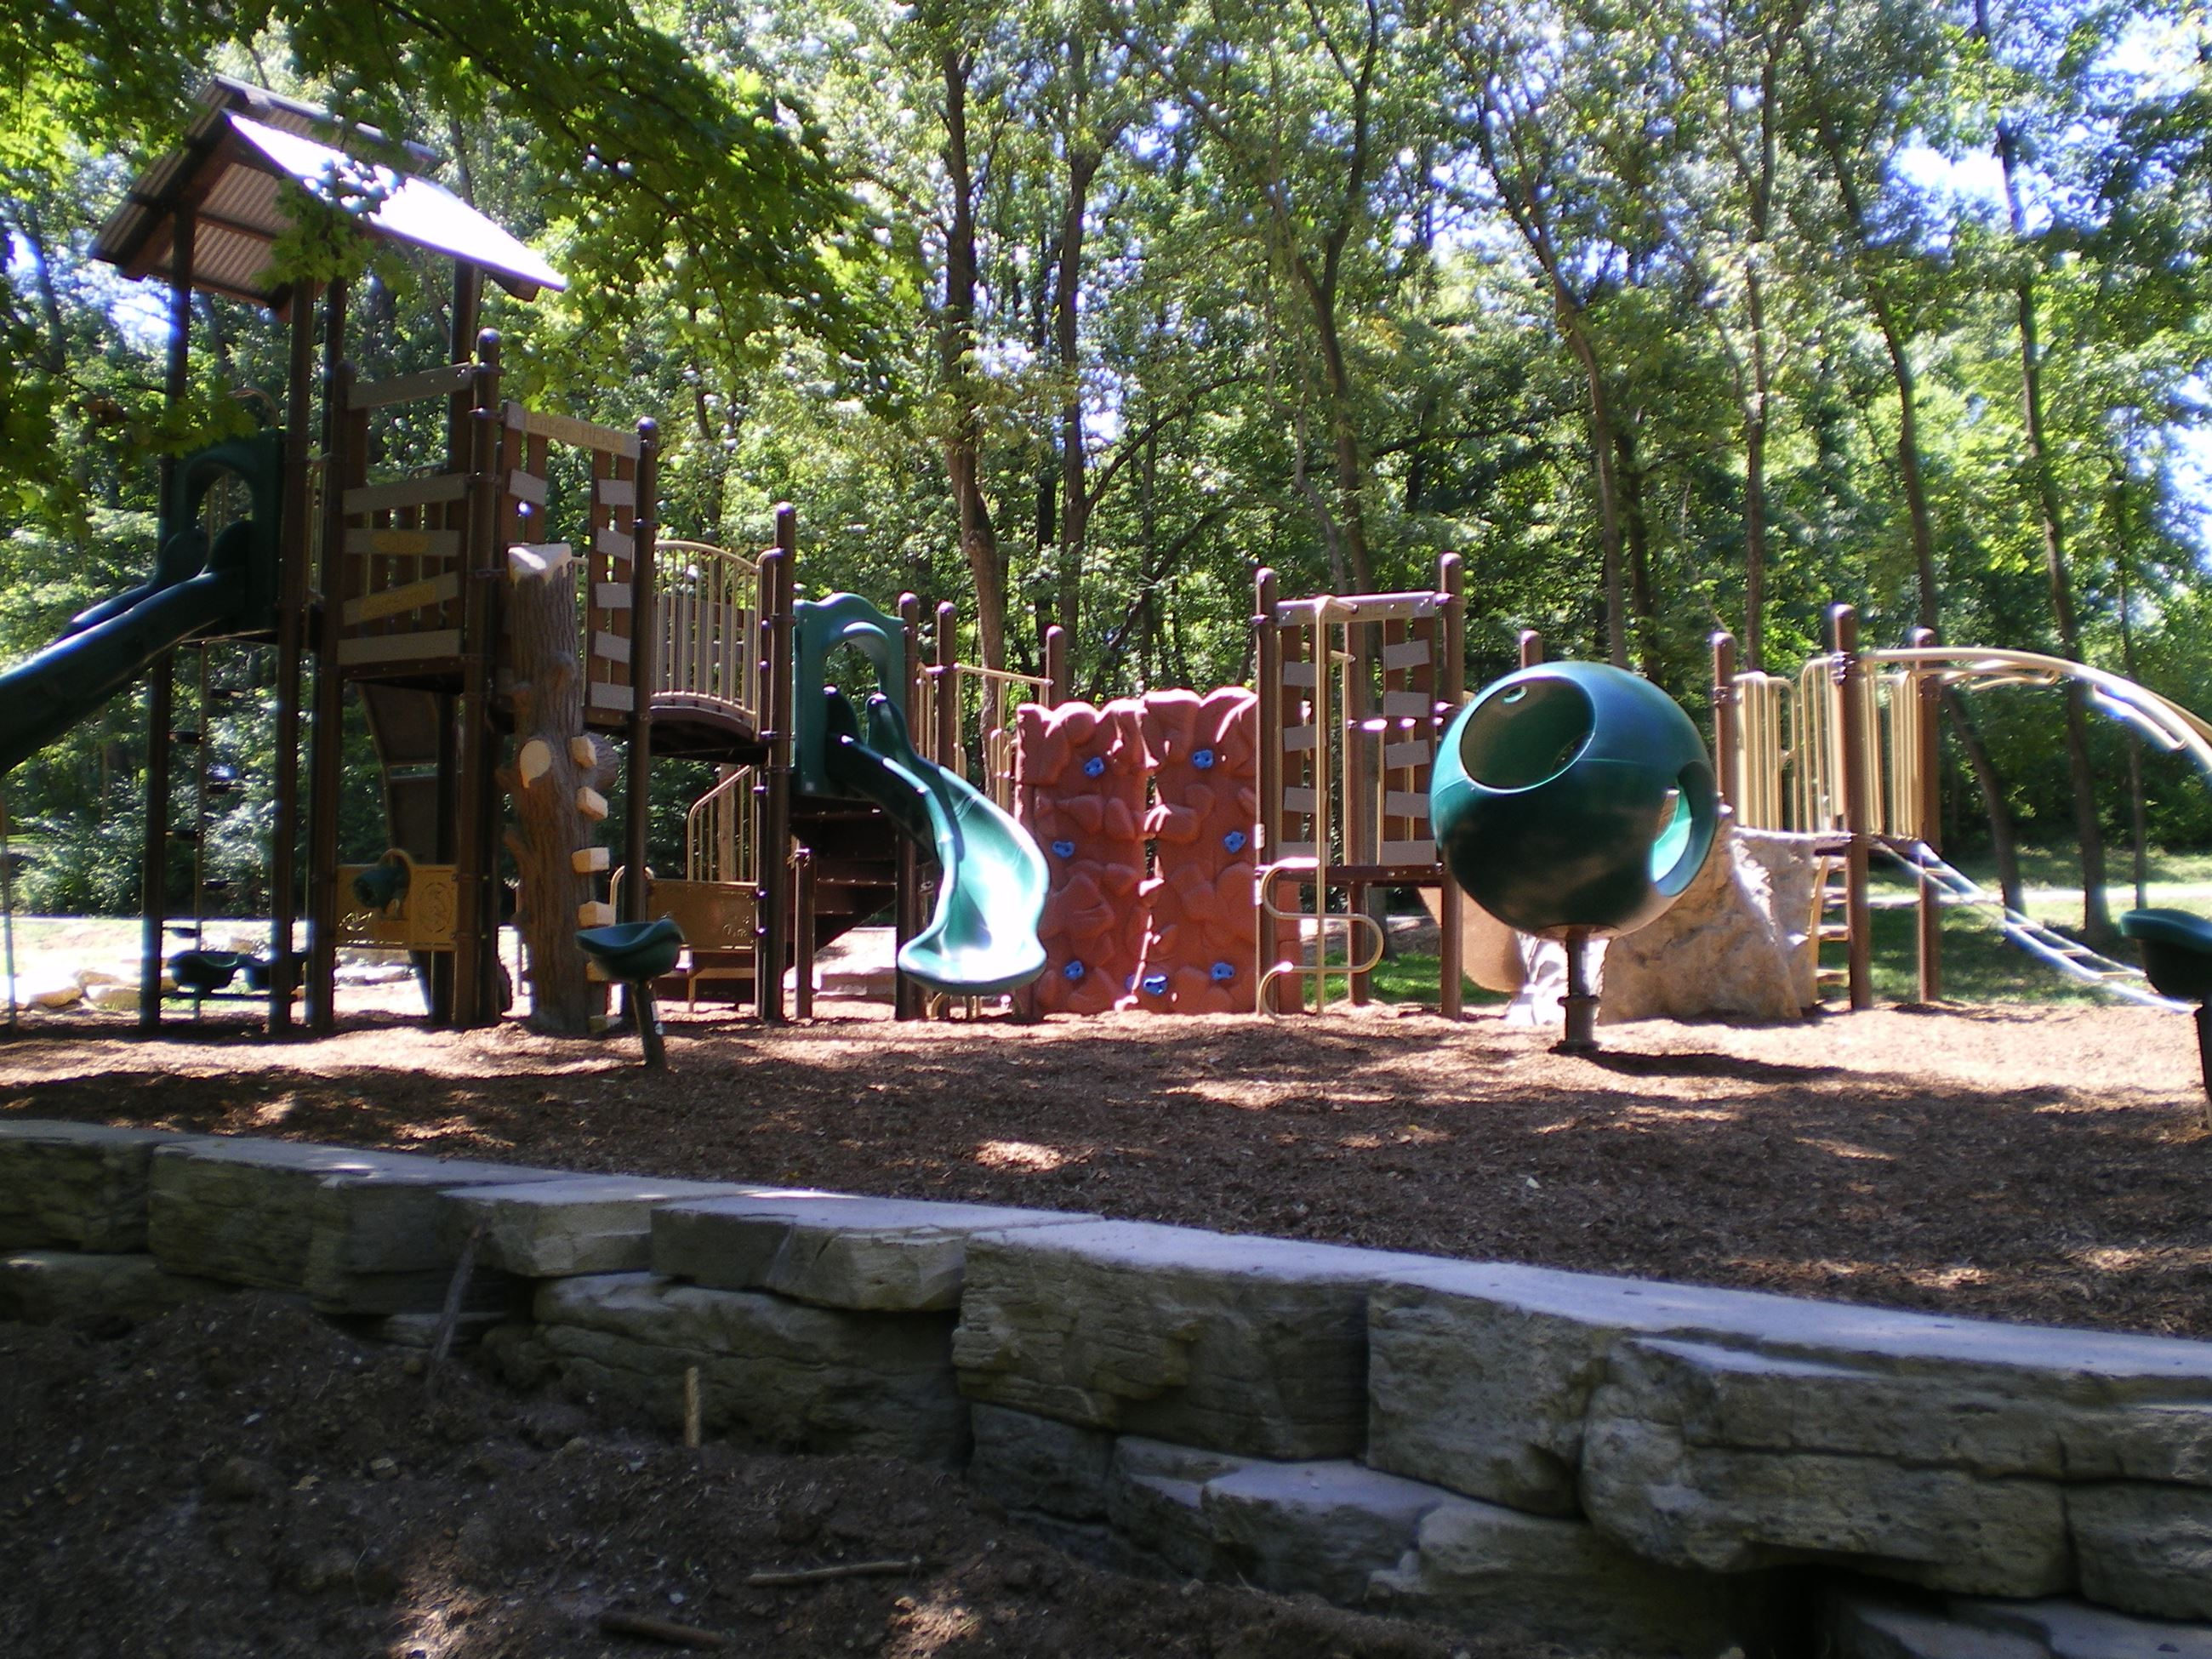 Playground at Margaret Stoecker Park